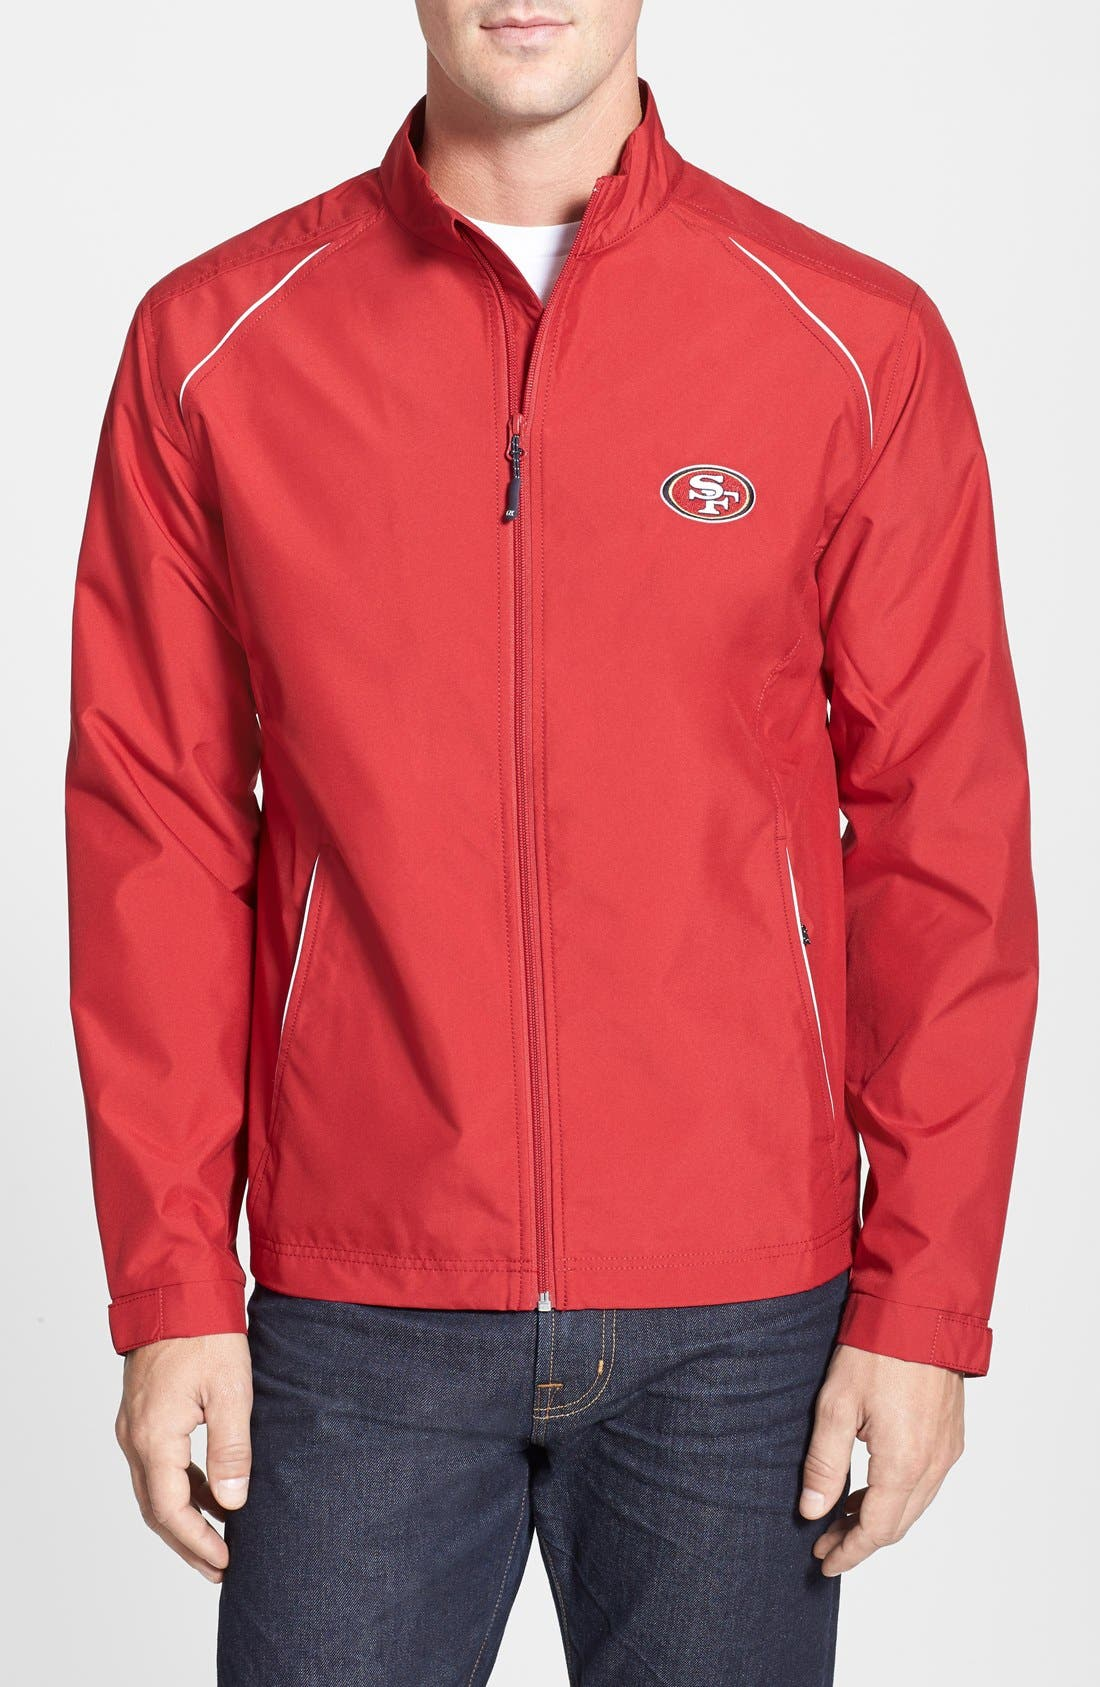 Cutter & Buck San Francisco 49ers - Beacon WeatherTec Wind & Water Resistant Jacket